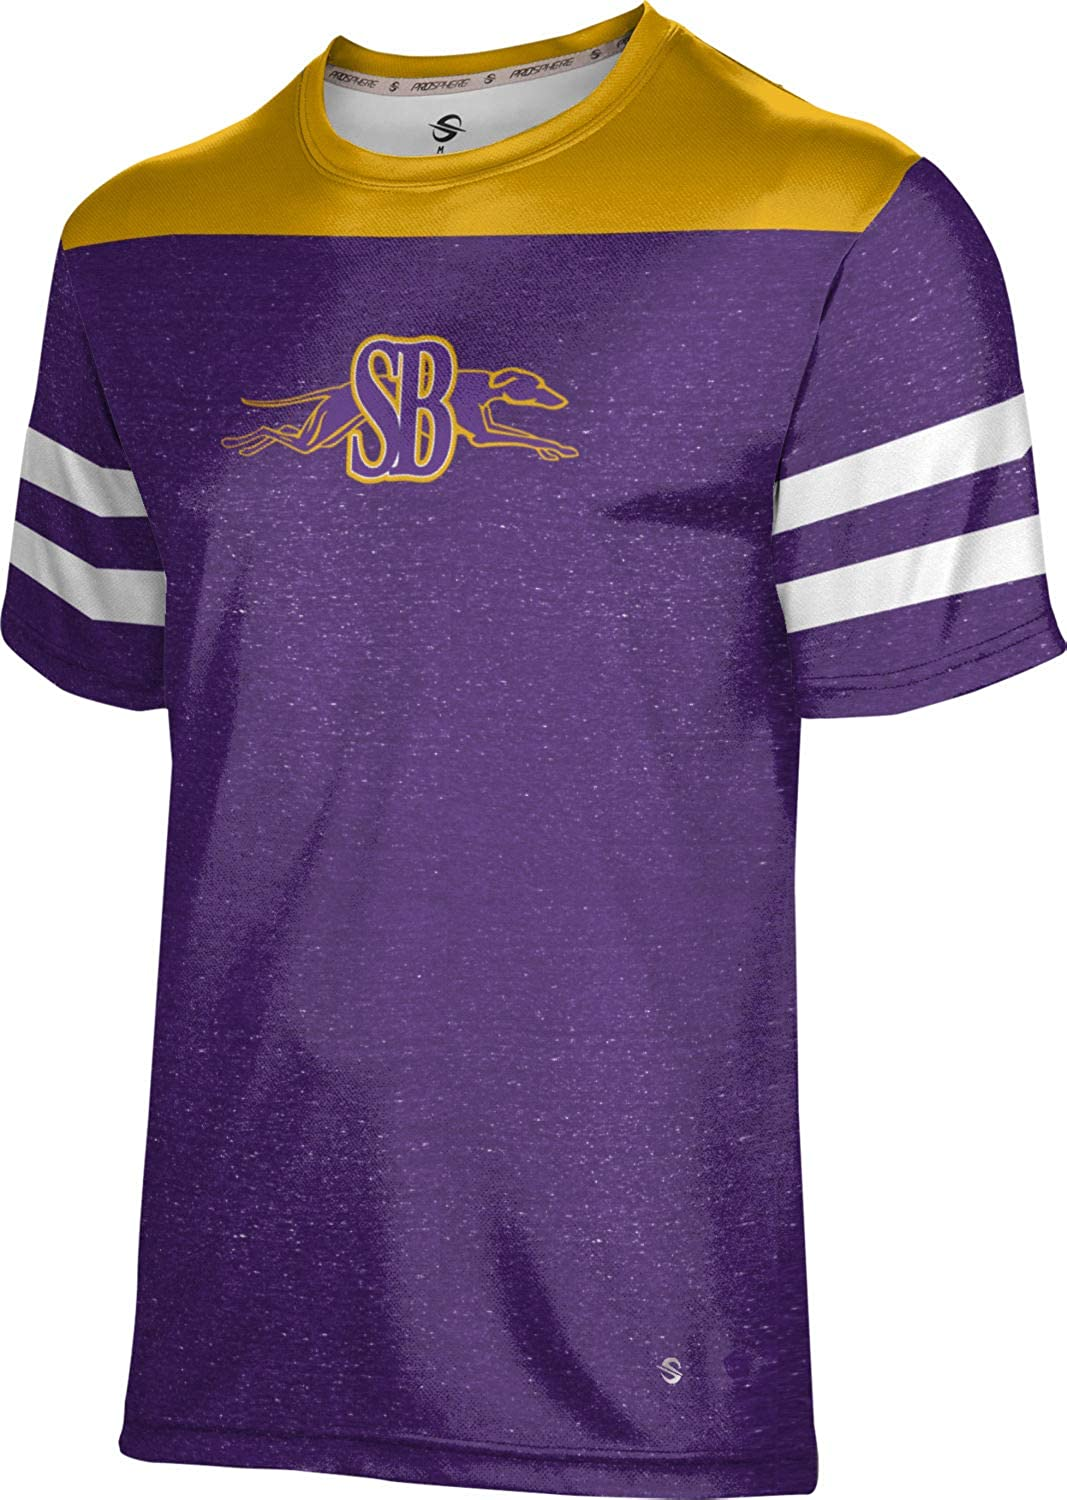 Department store ProSphere San Benito Classic High School Game Performance Boys' T-Shirt